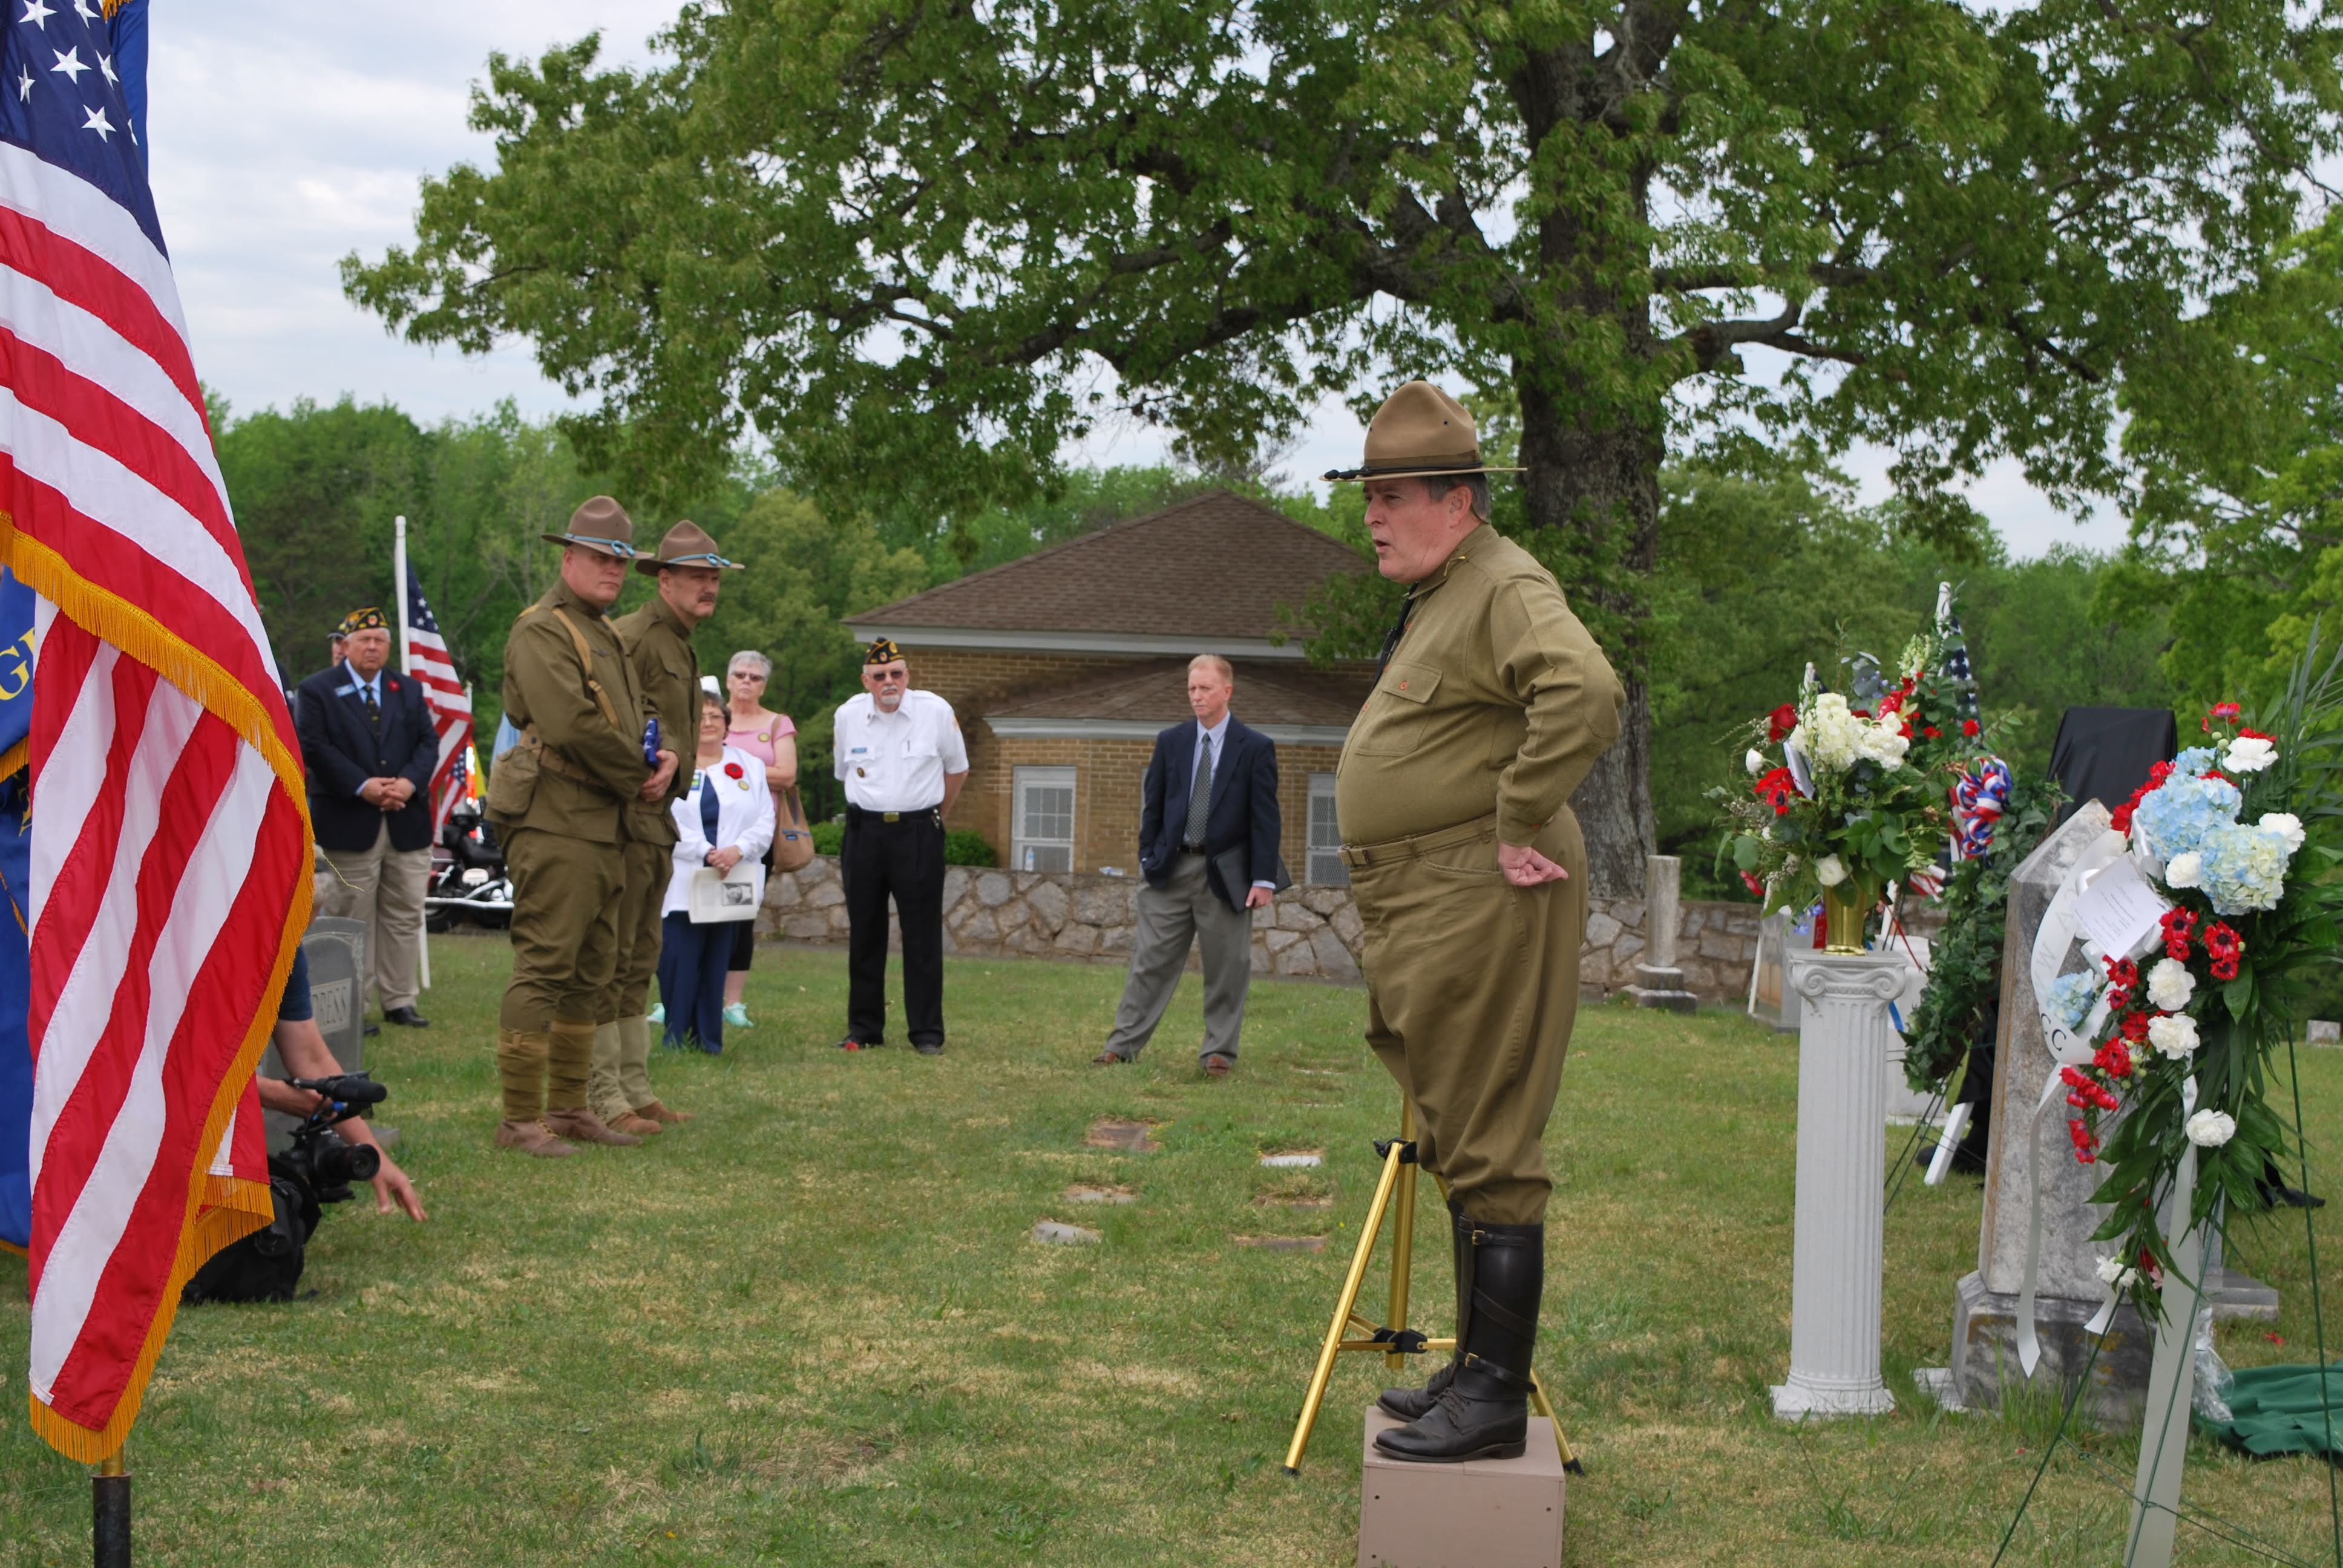 Soldier dressed in WW1 military attire stands atop a box and gives a speech